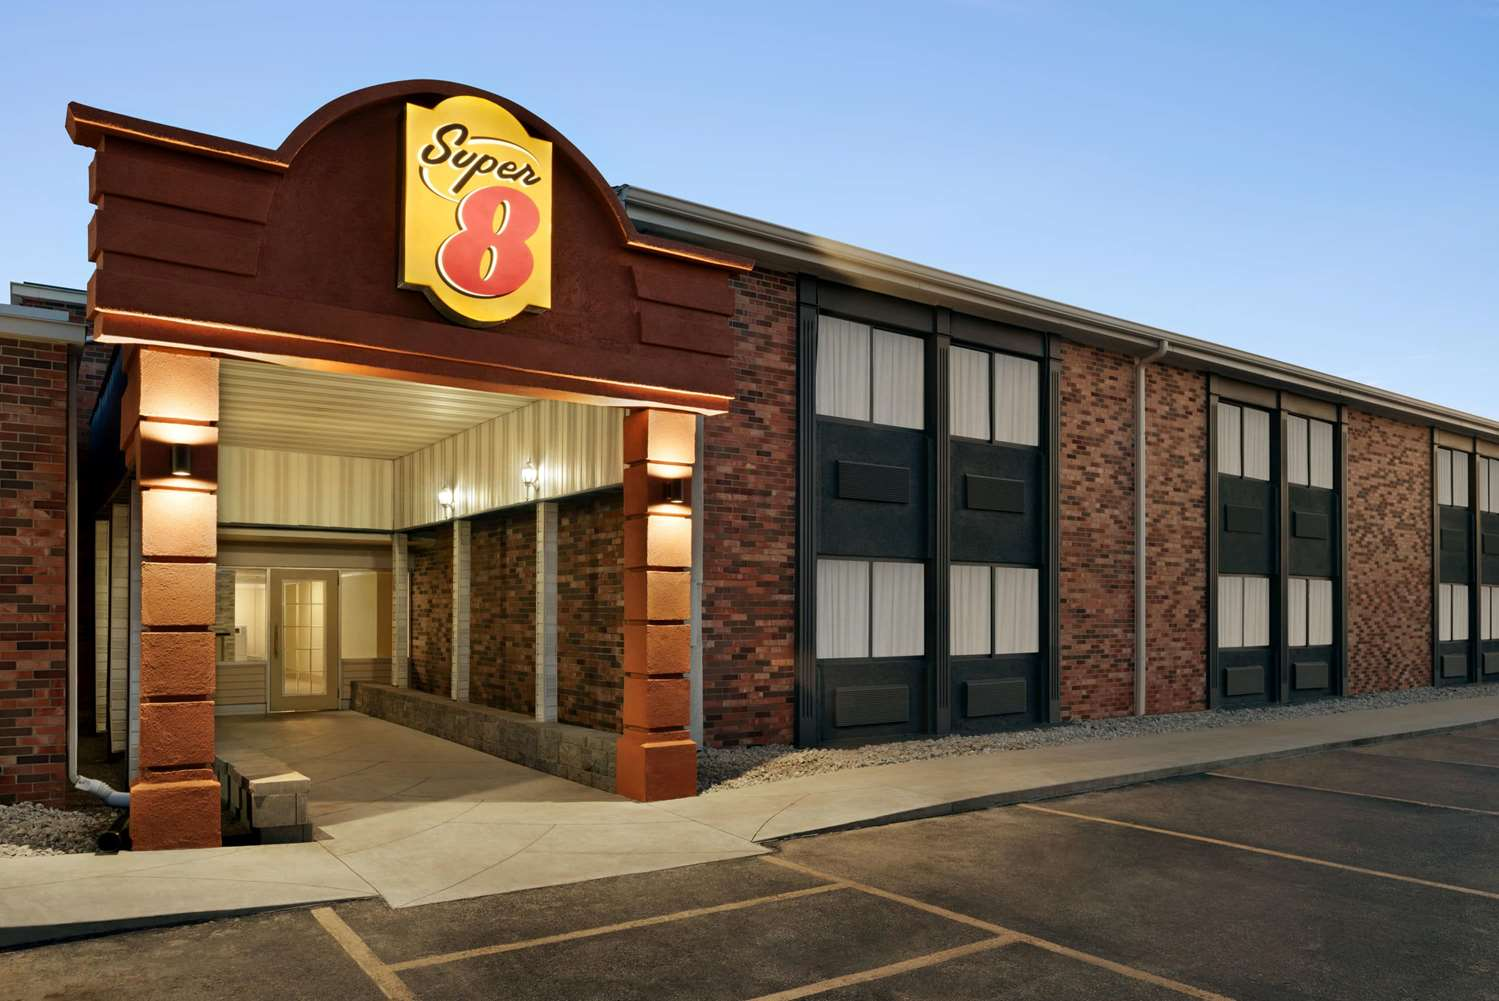 Super 8 Hotel North Des Moines Ia See Discounts